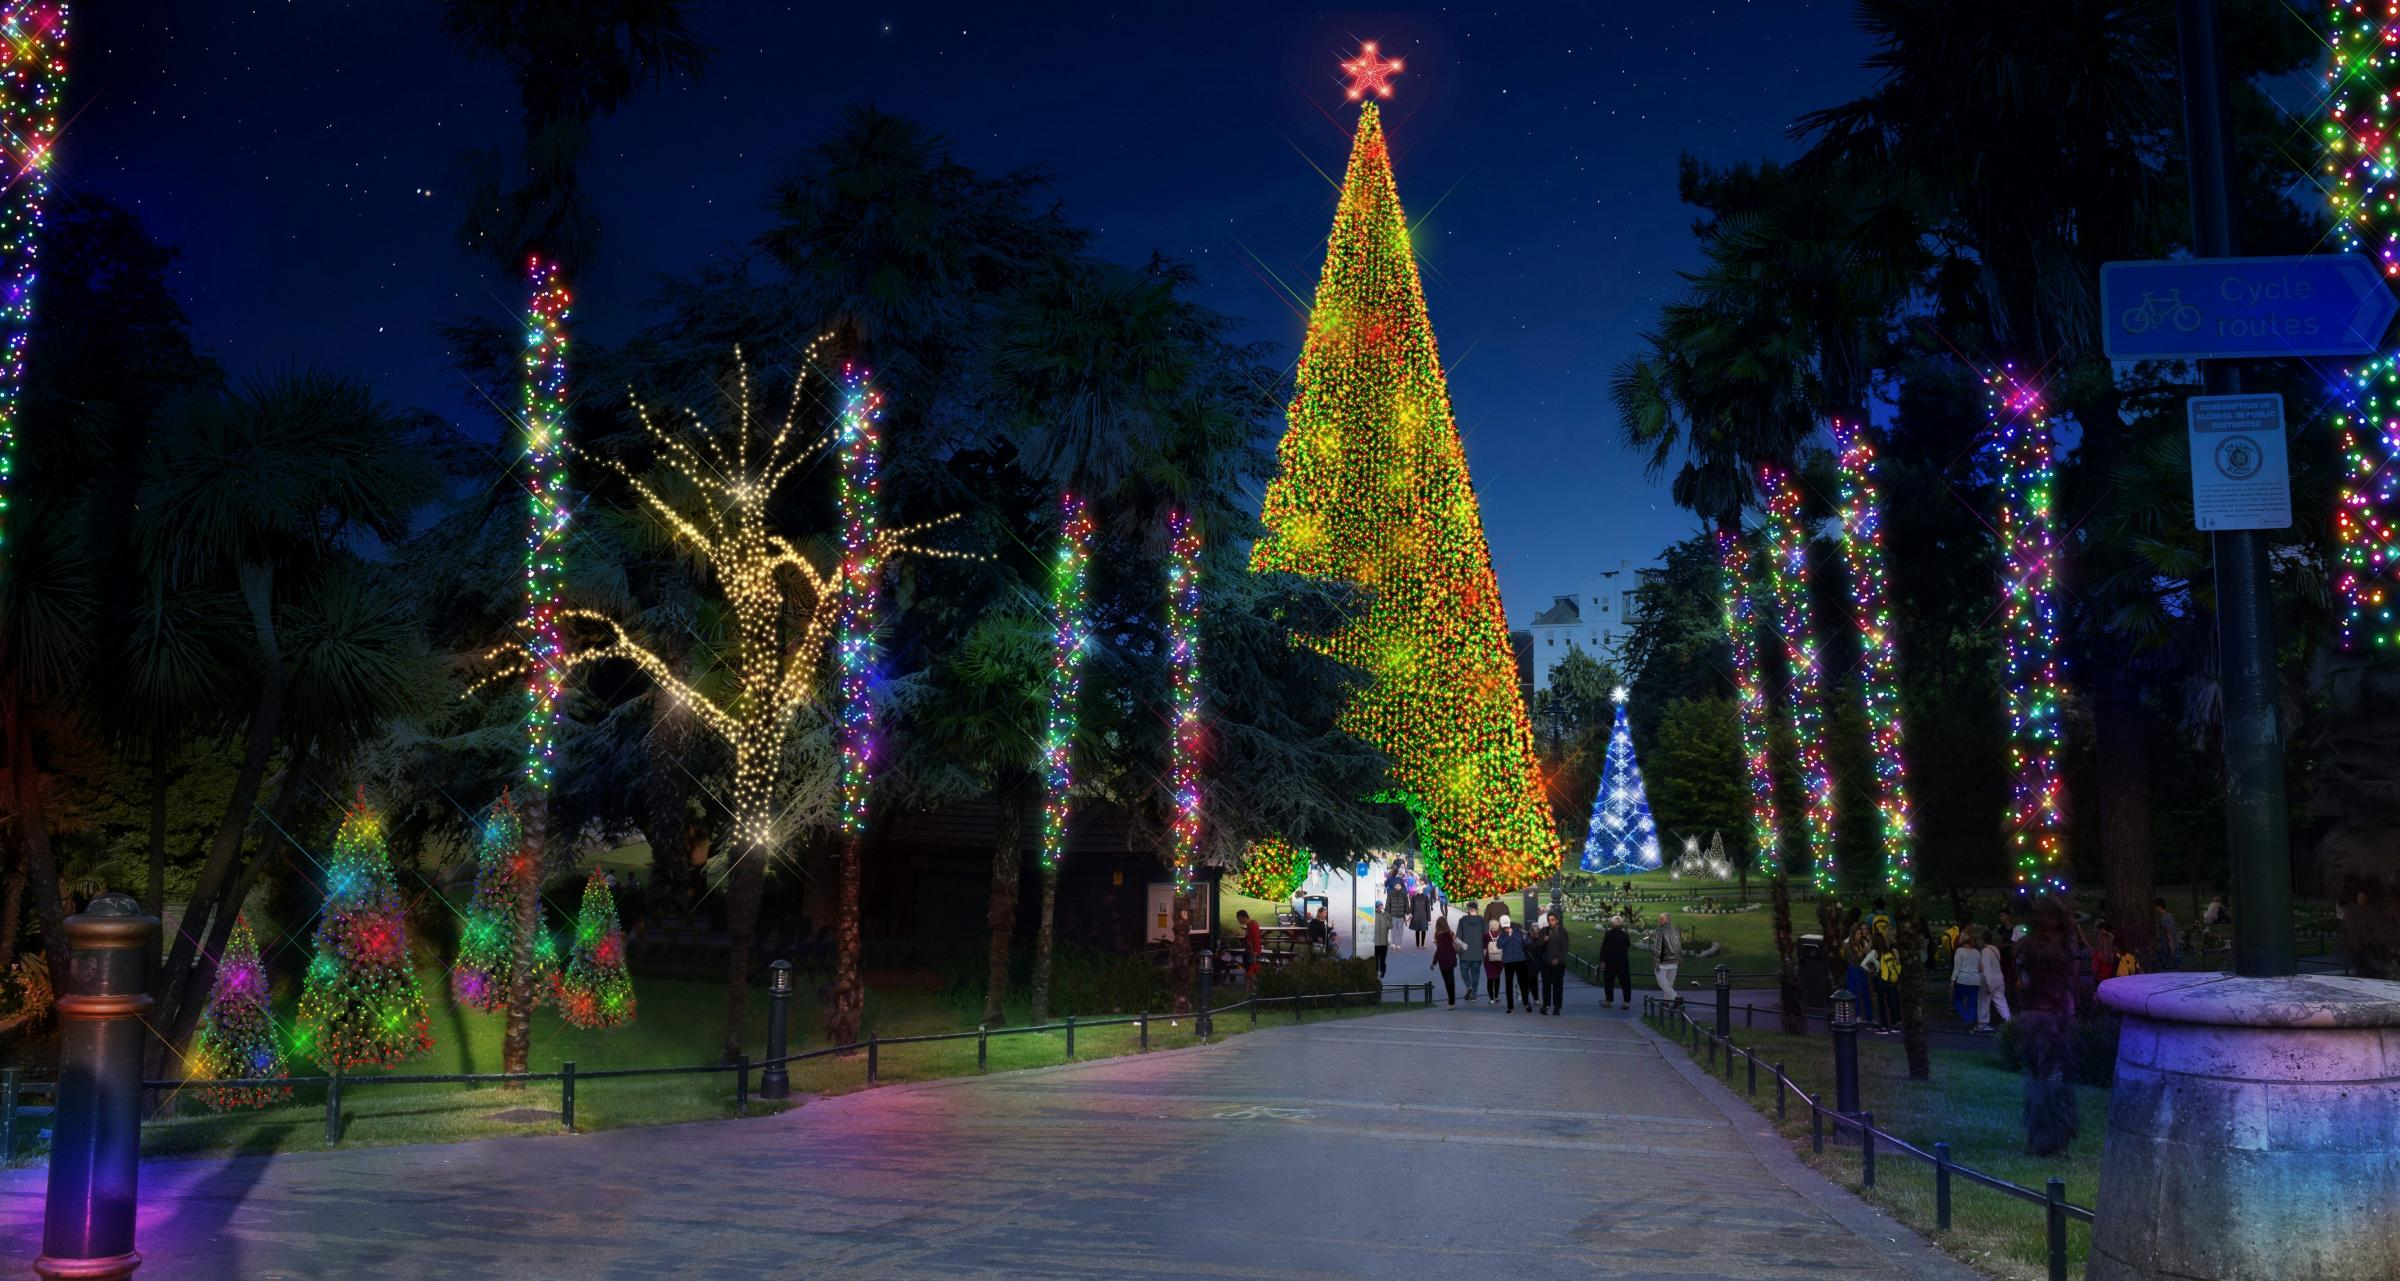 A 60ft Walk Through Tree With 30,000 Lights: Whatu0027s Planned For  Bournemouthu0027s Christmas Tree Wonderland